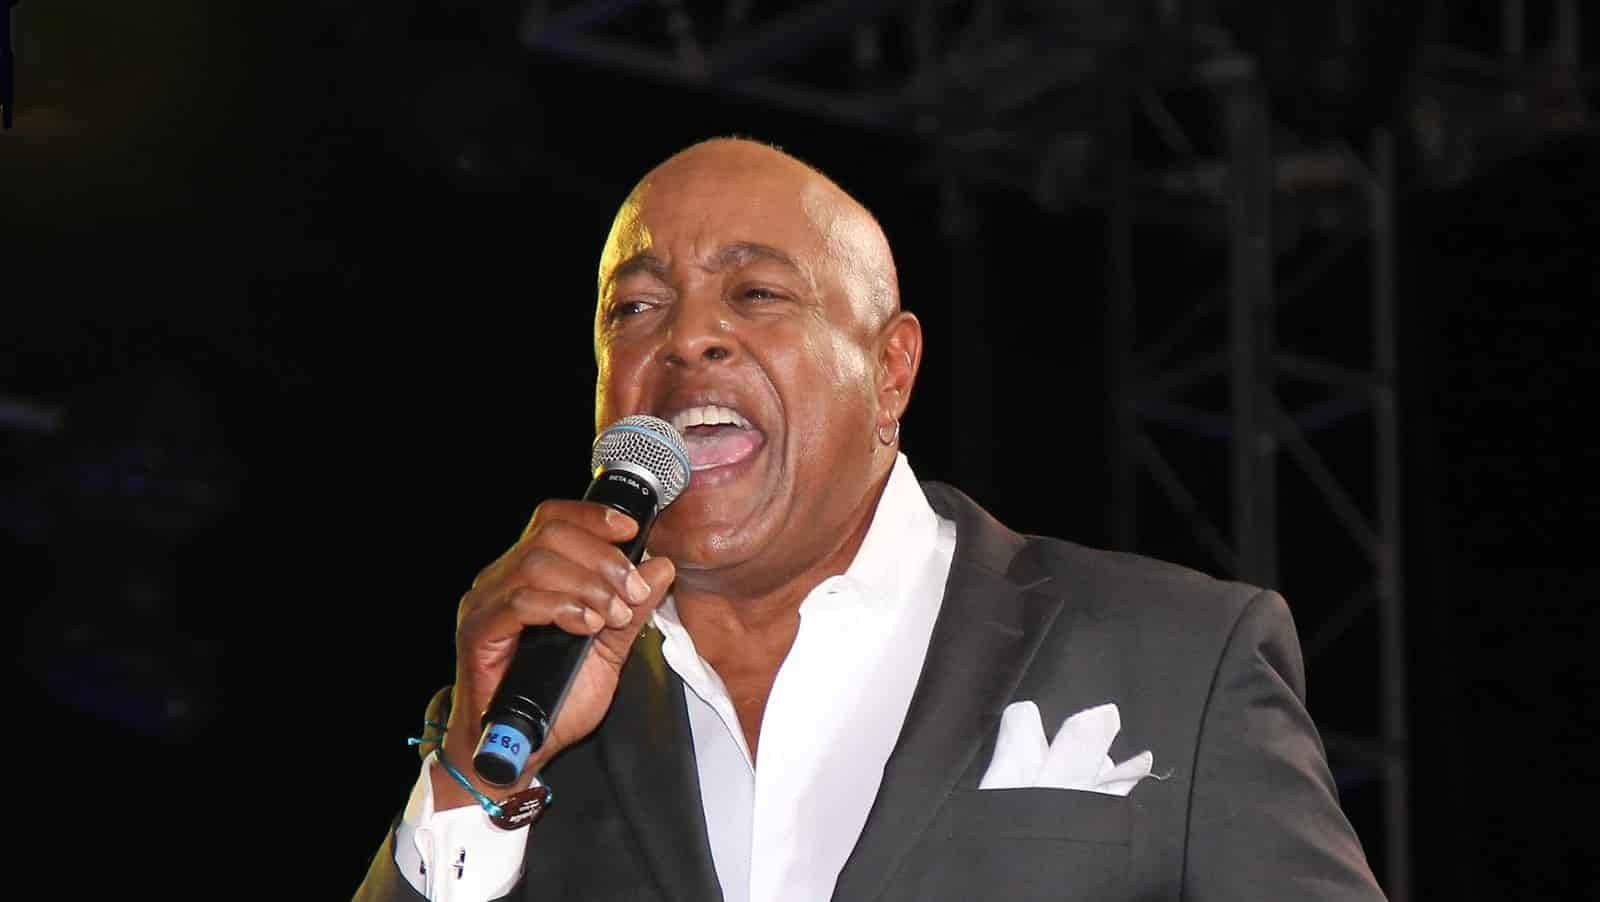 Peabo Bryson (21+ Event) (Rescheduled from 5/9/2020, 8/7/2020)